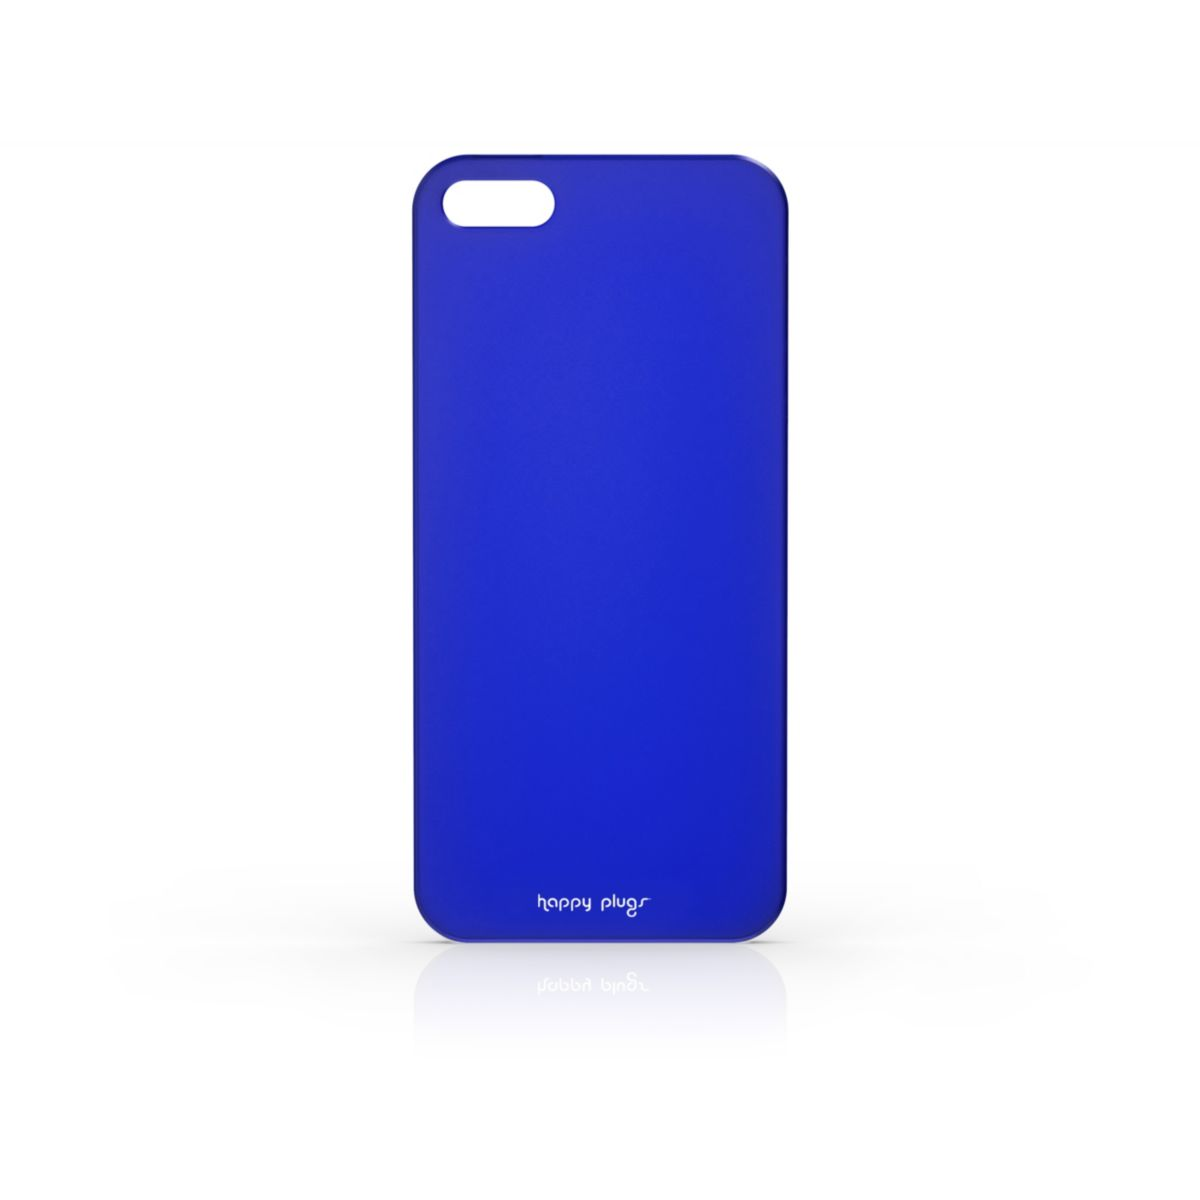 Coque HAPPY PLUGS iPhone 5S/SE cobalt